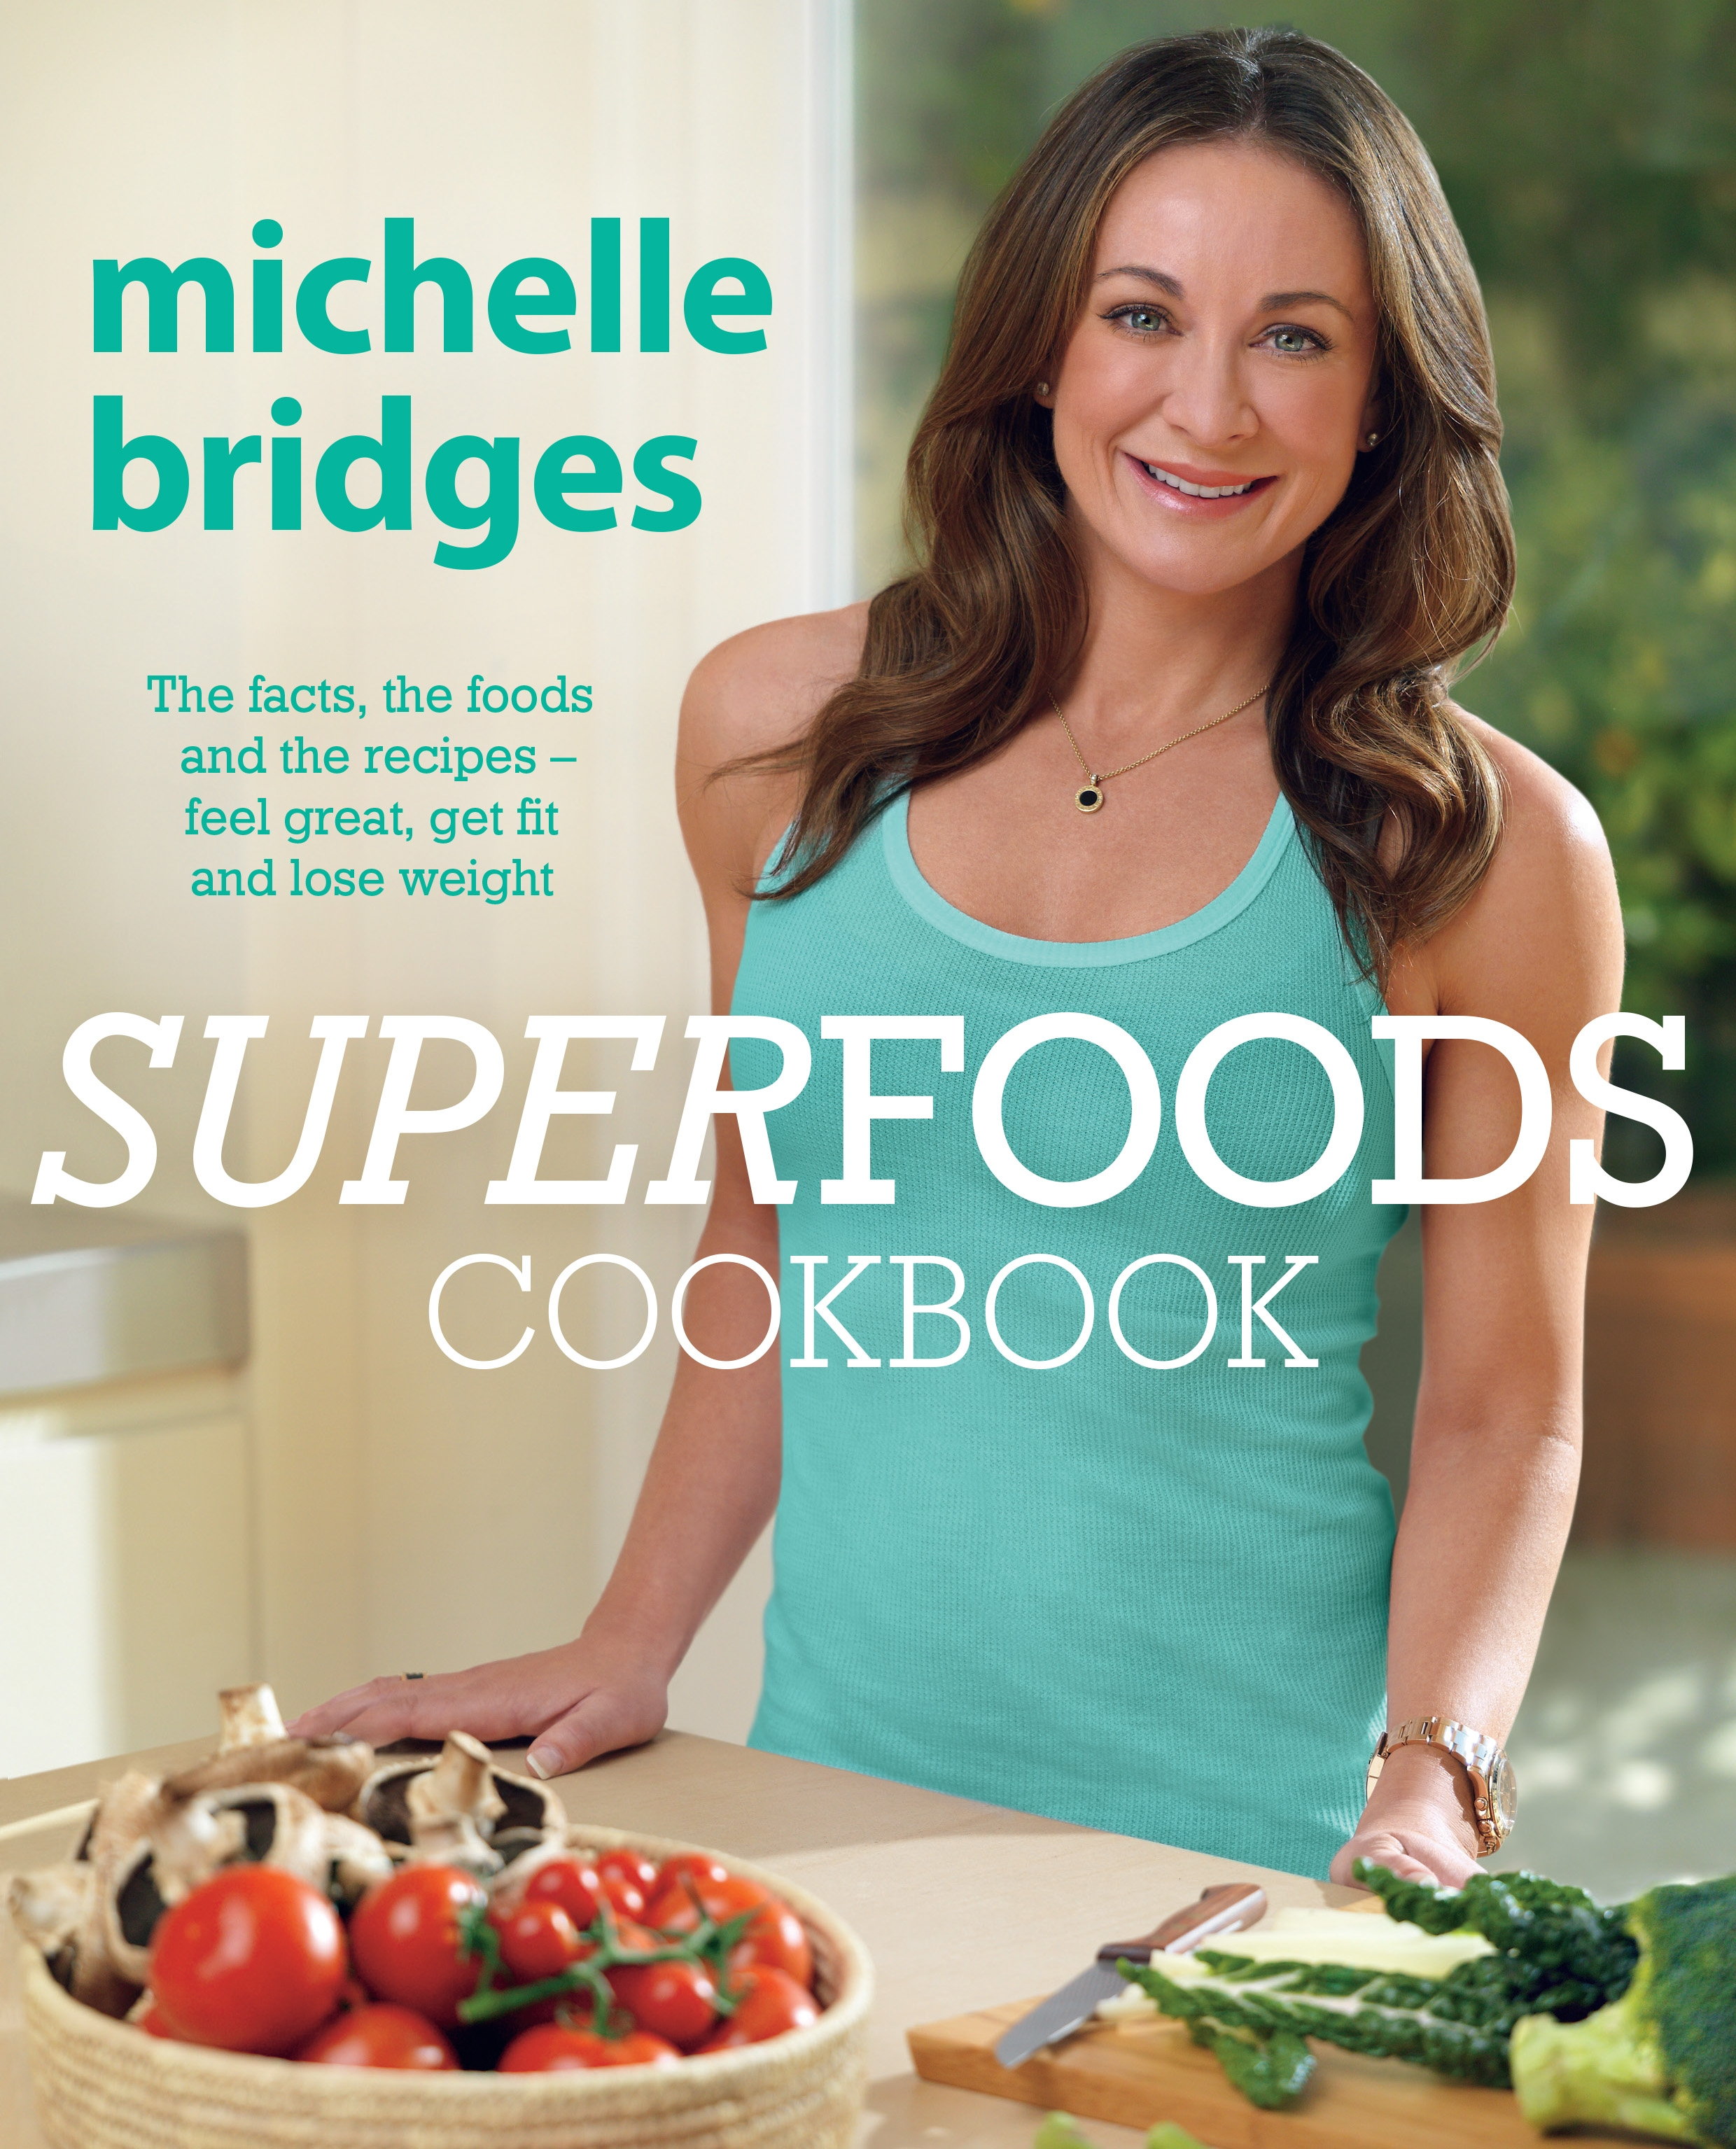 Superfoods cookbook the facts the foods and the recipes feel hi res cover superfoods cookbook forumfinder Choice Image